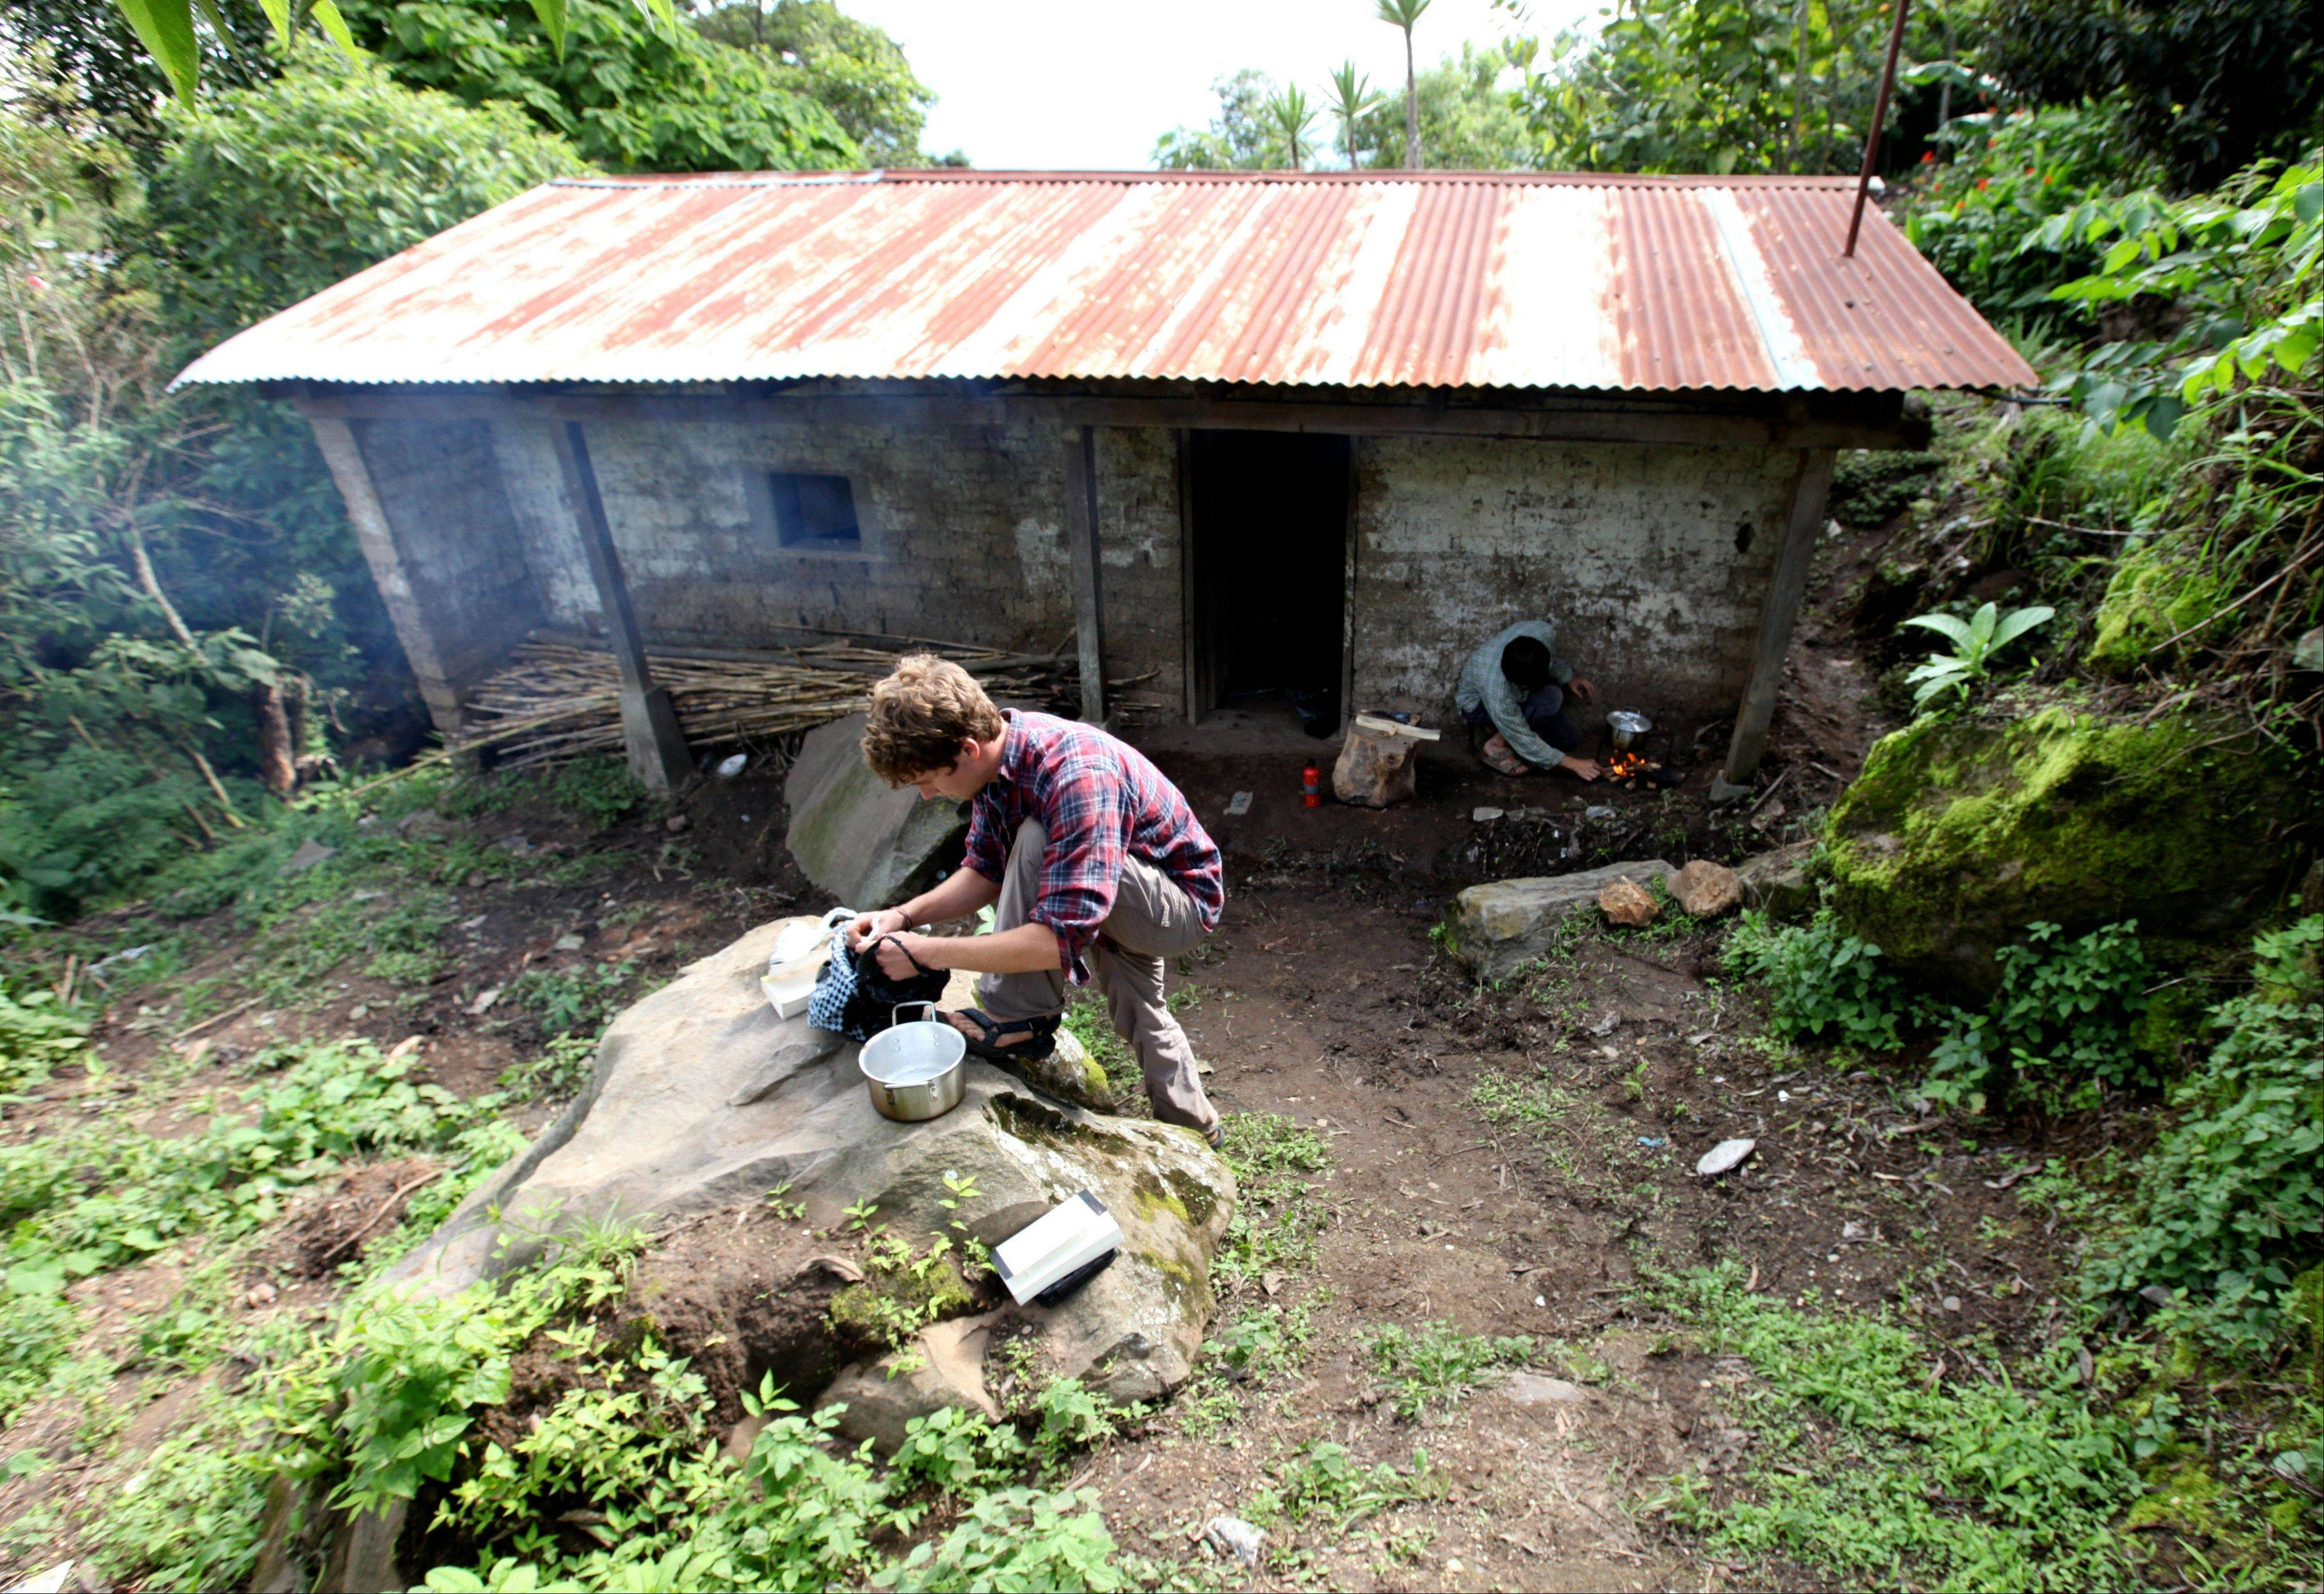 Chris Temple and Ryan Christofferson prepare food outside the dirt-floor hut where they lived for a summer in the village of Pena Blanca, Guatemala.